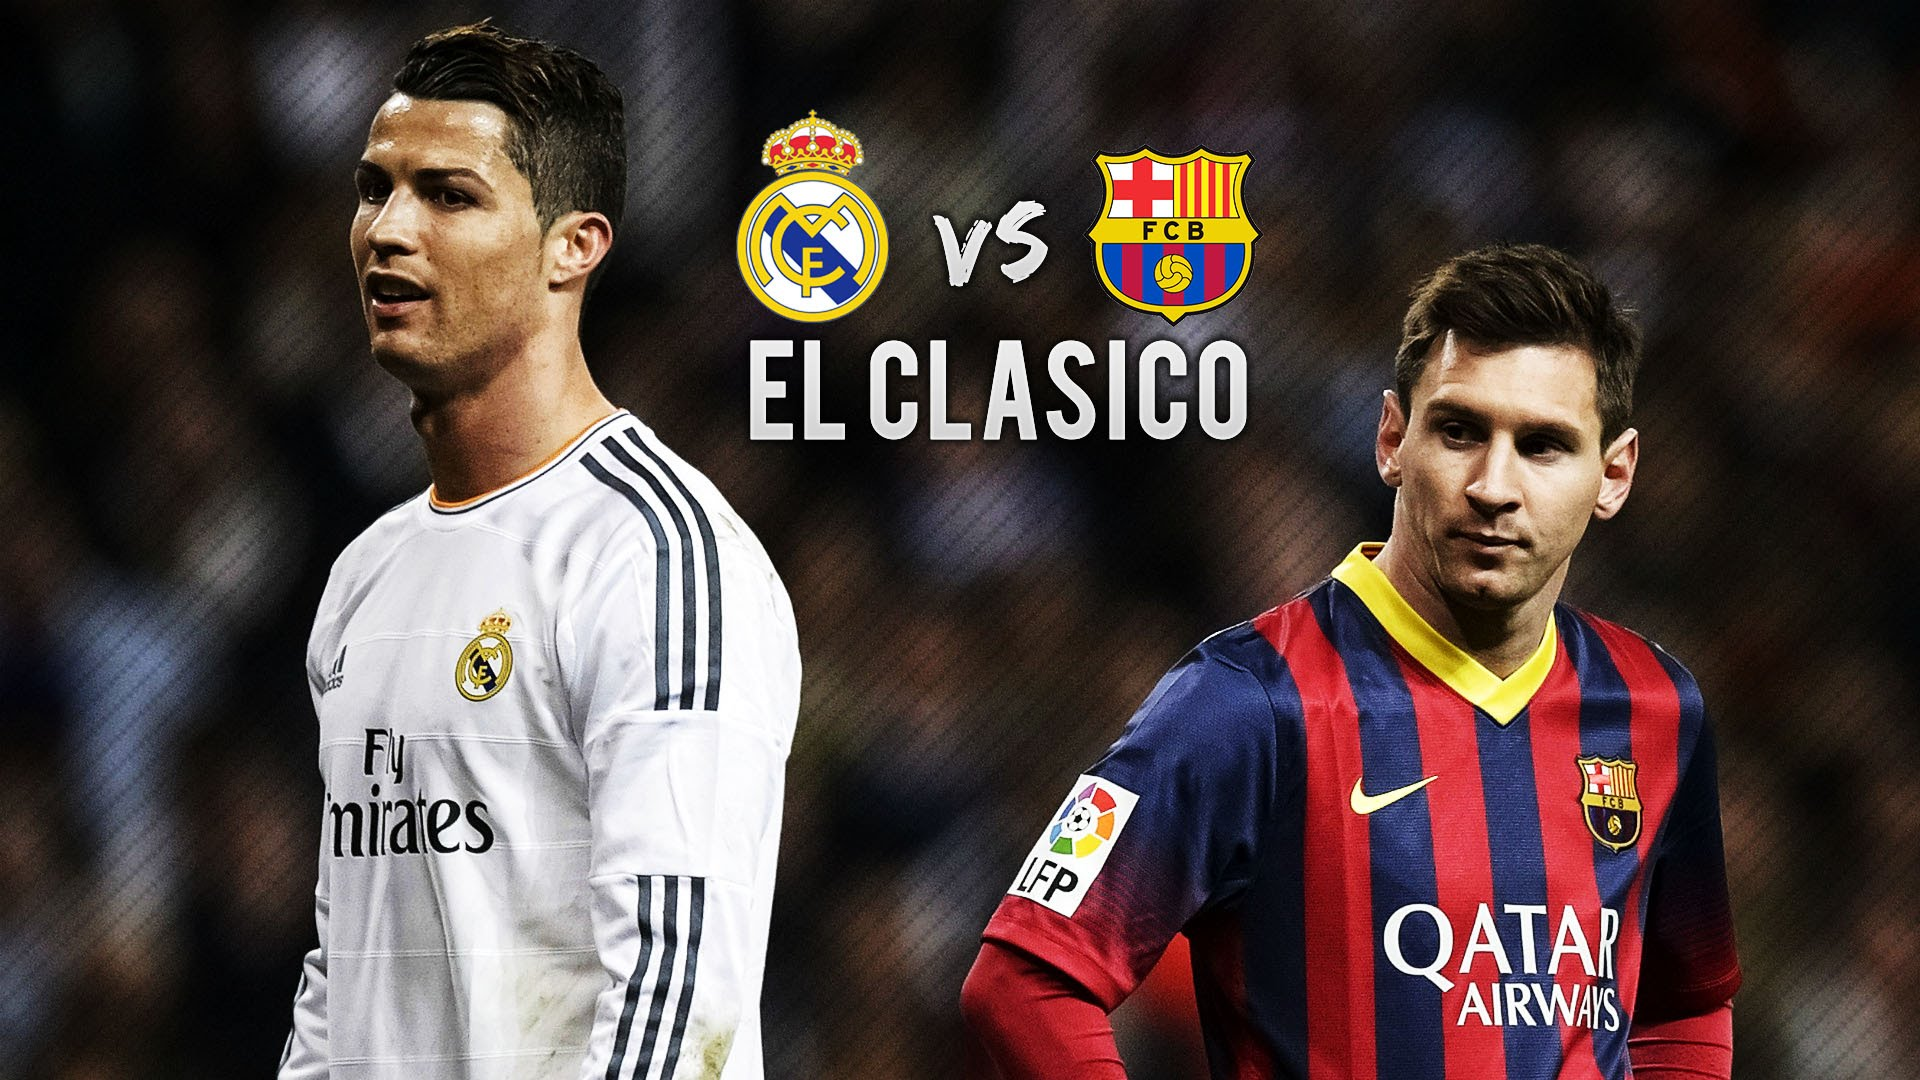 The Biggest Football Match Of The Year Barcelona Vs Real Madrid